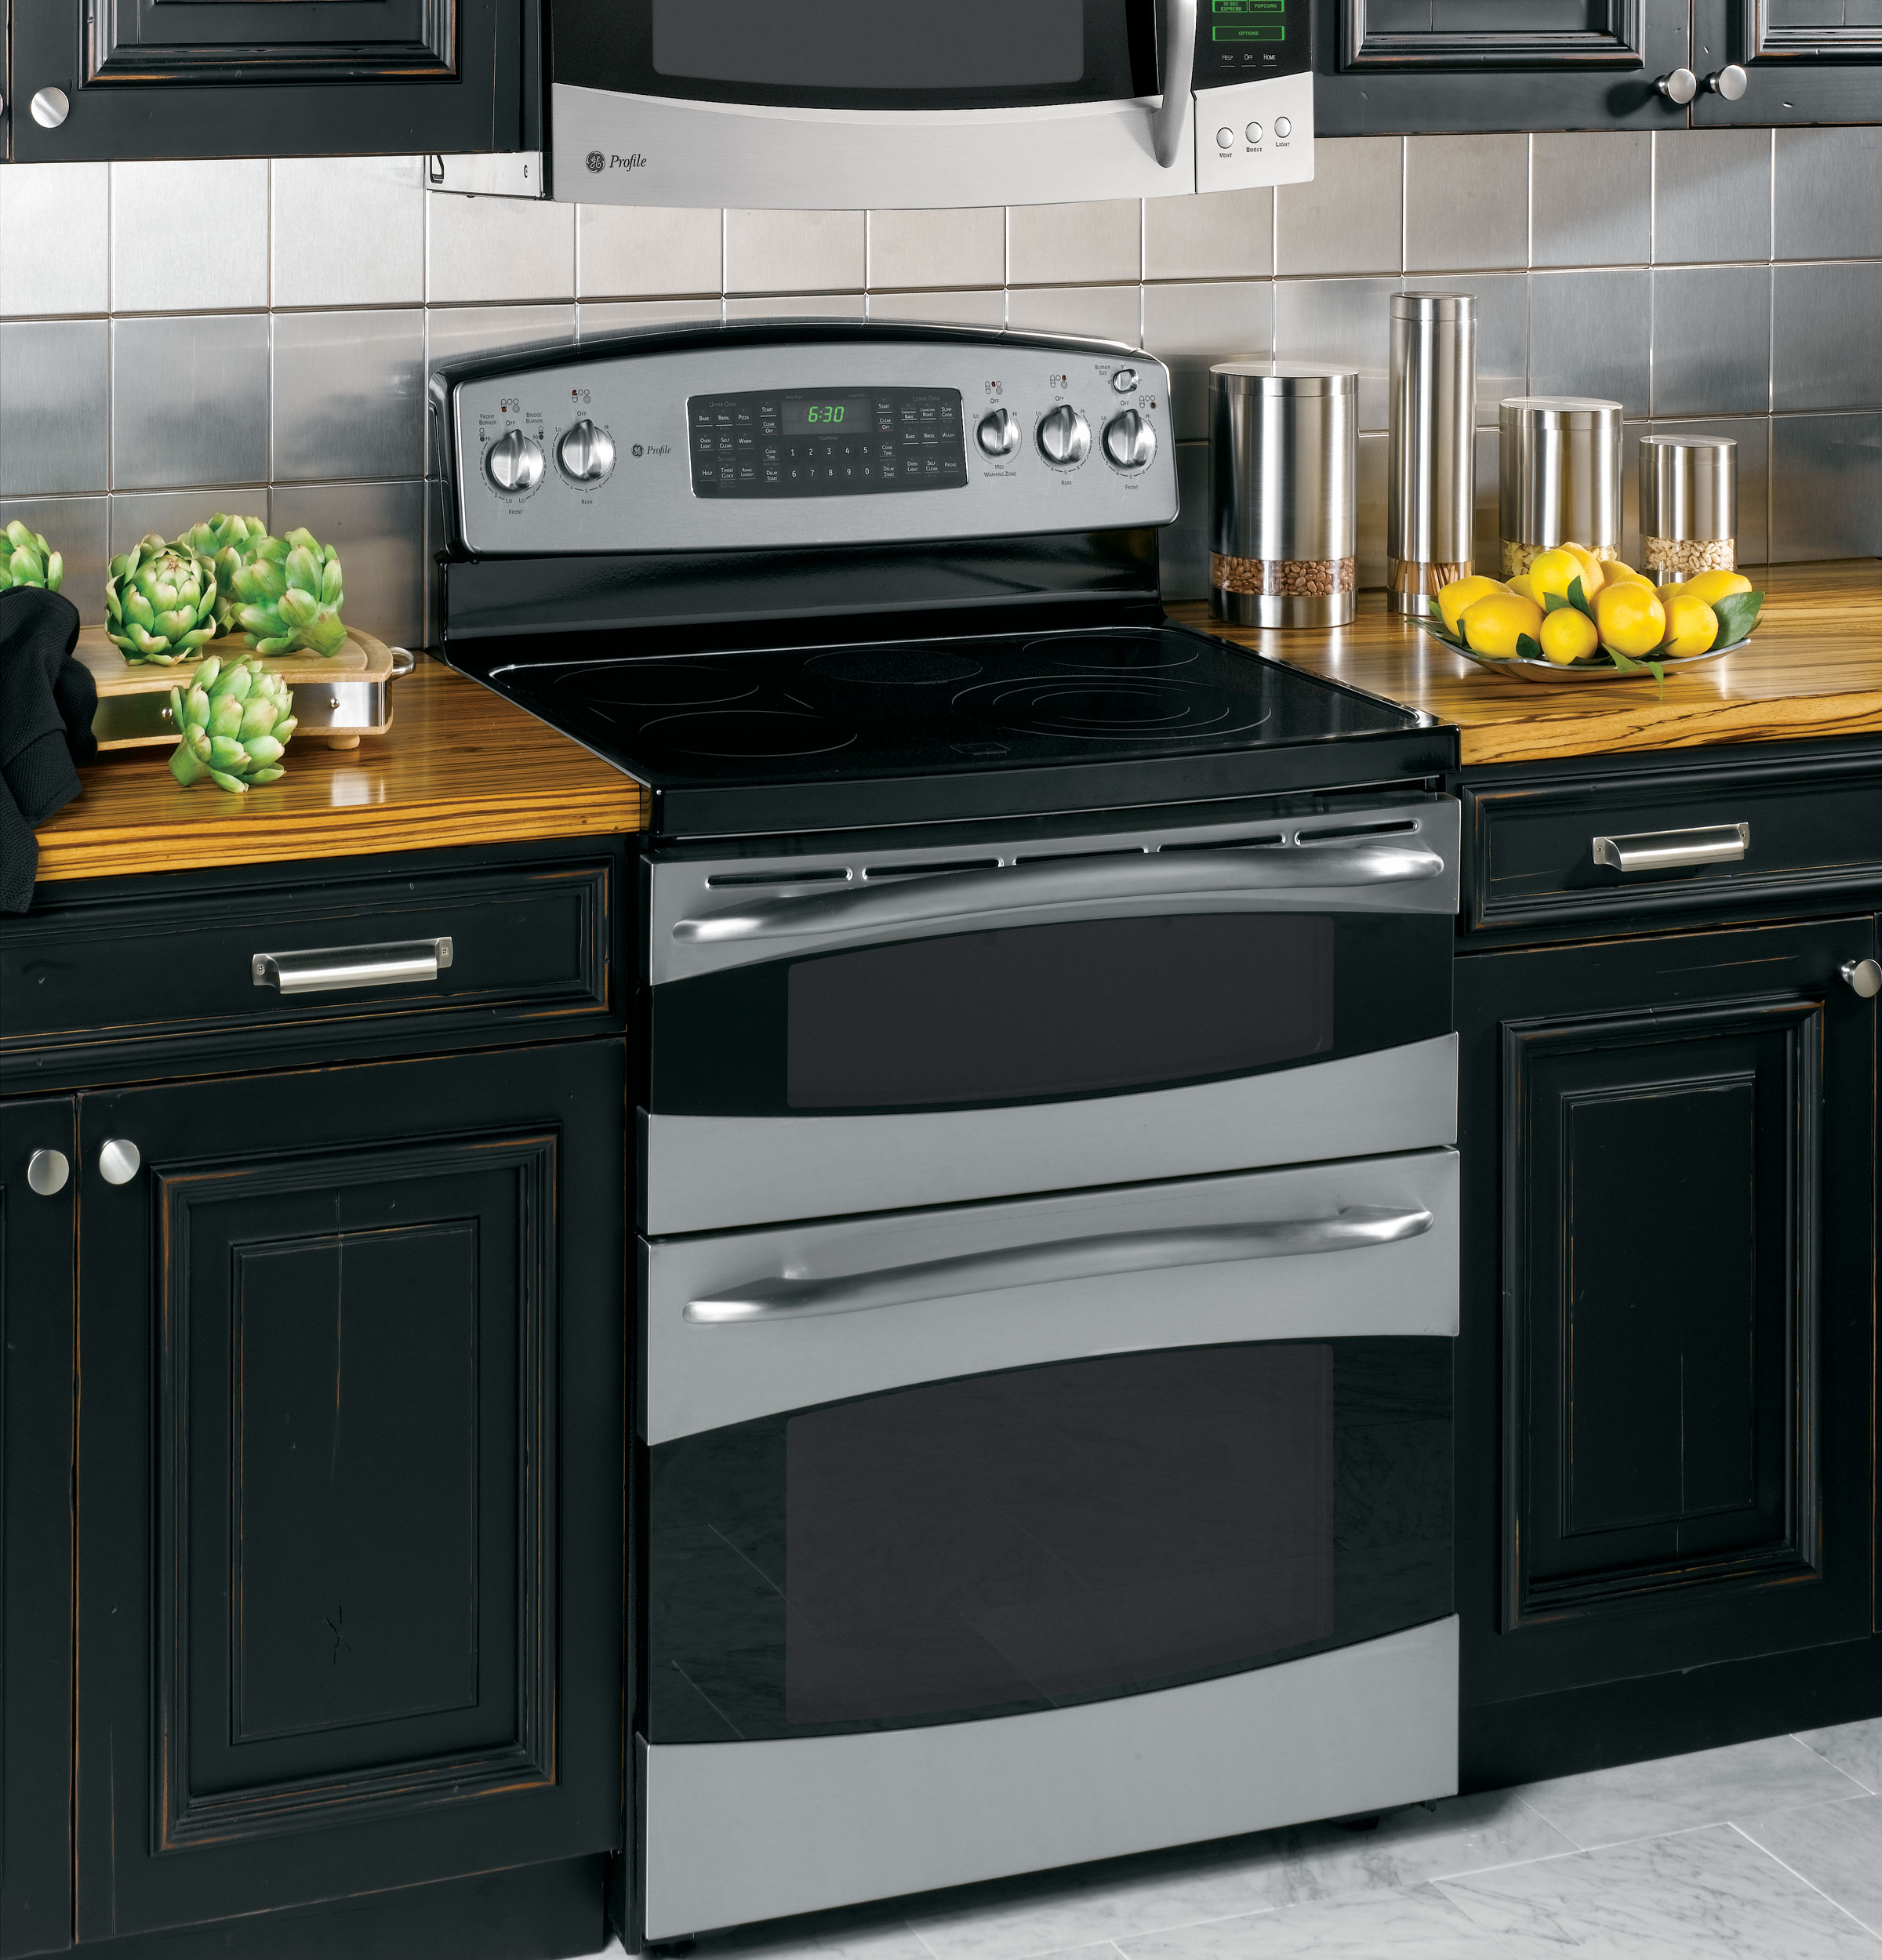 Double Oven Range ~ Range oven ge profile double electric